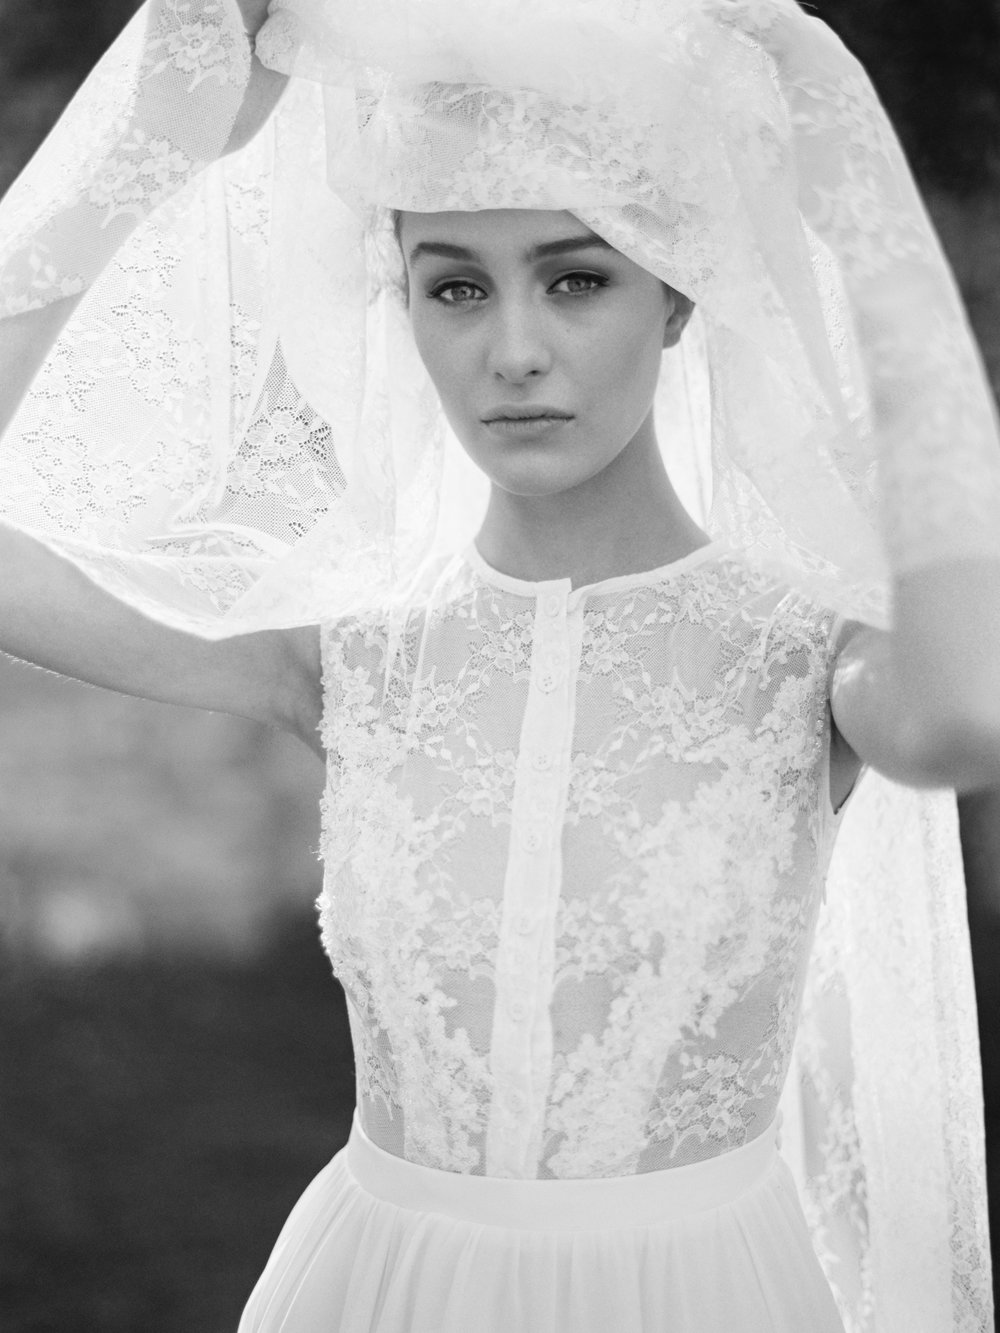 TamaraGigolaphotography,Cathytelle,royalweddingdress,kakheti-0037-6-2.JPG